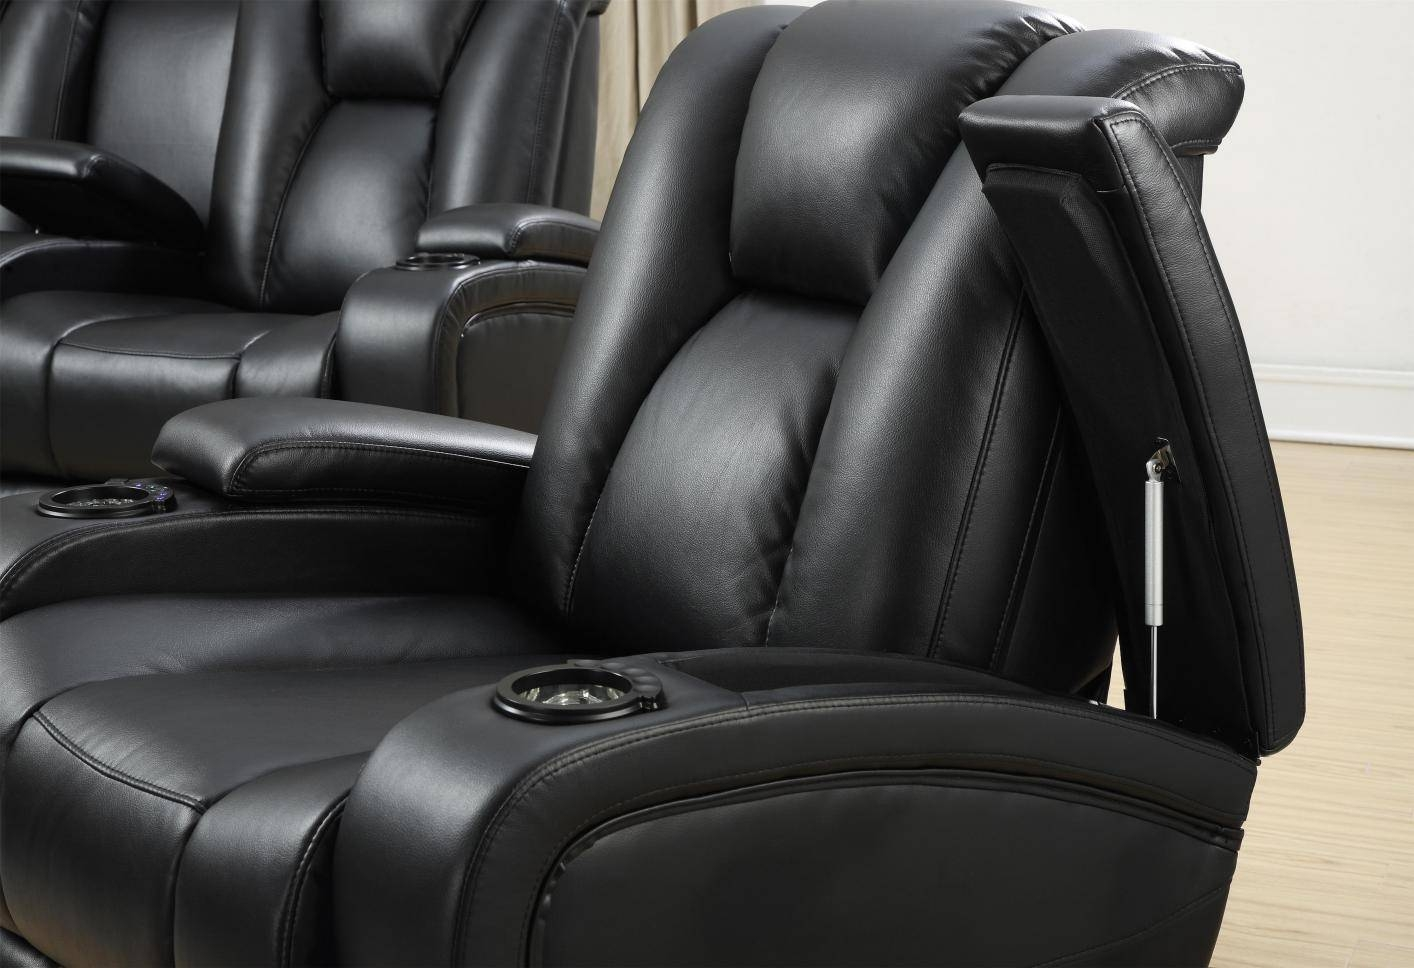 Black Leather Power Reclining Sofa - Steal-A-Sofa Furniture Outlet within Sofa Chair Recliner (Image 3 of 30)